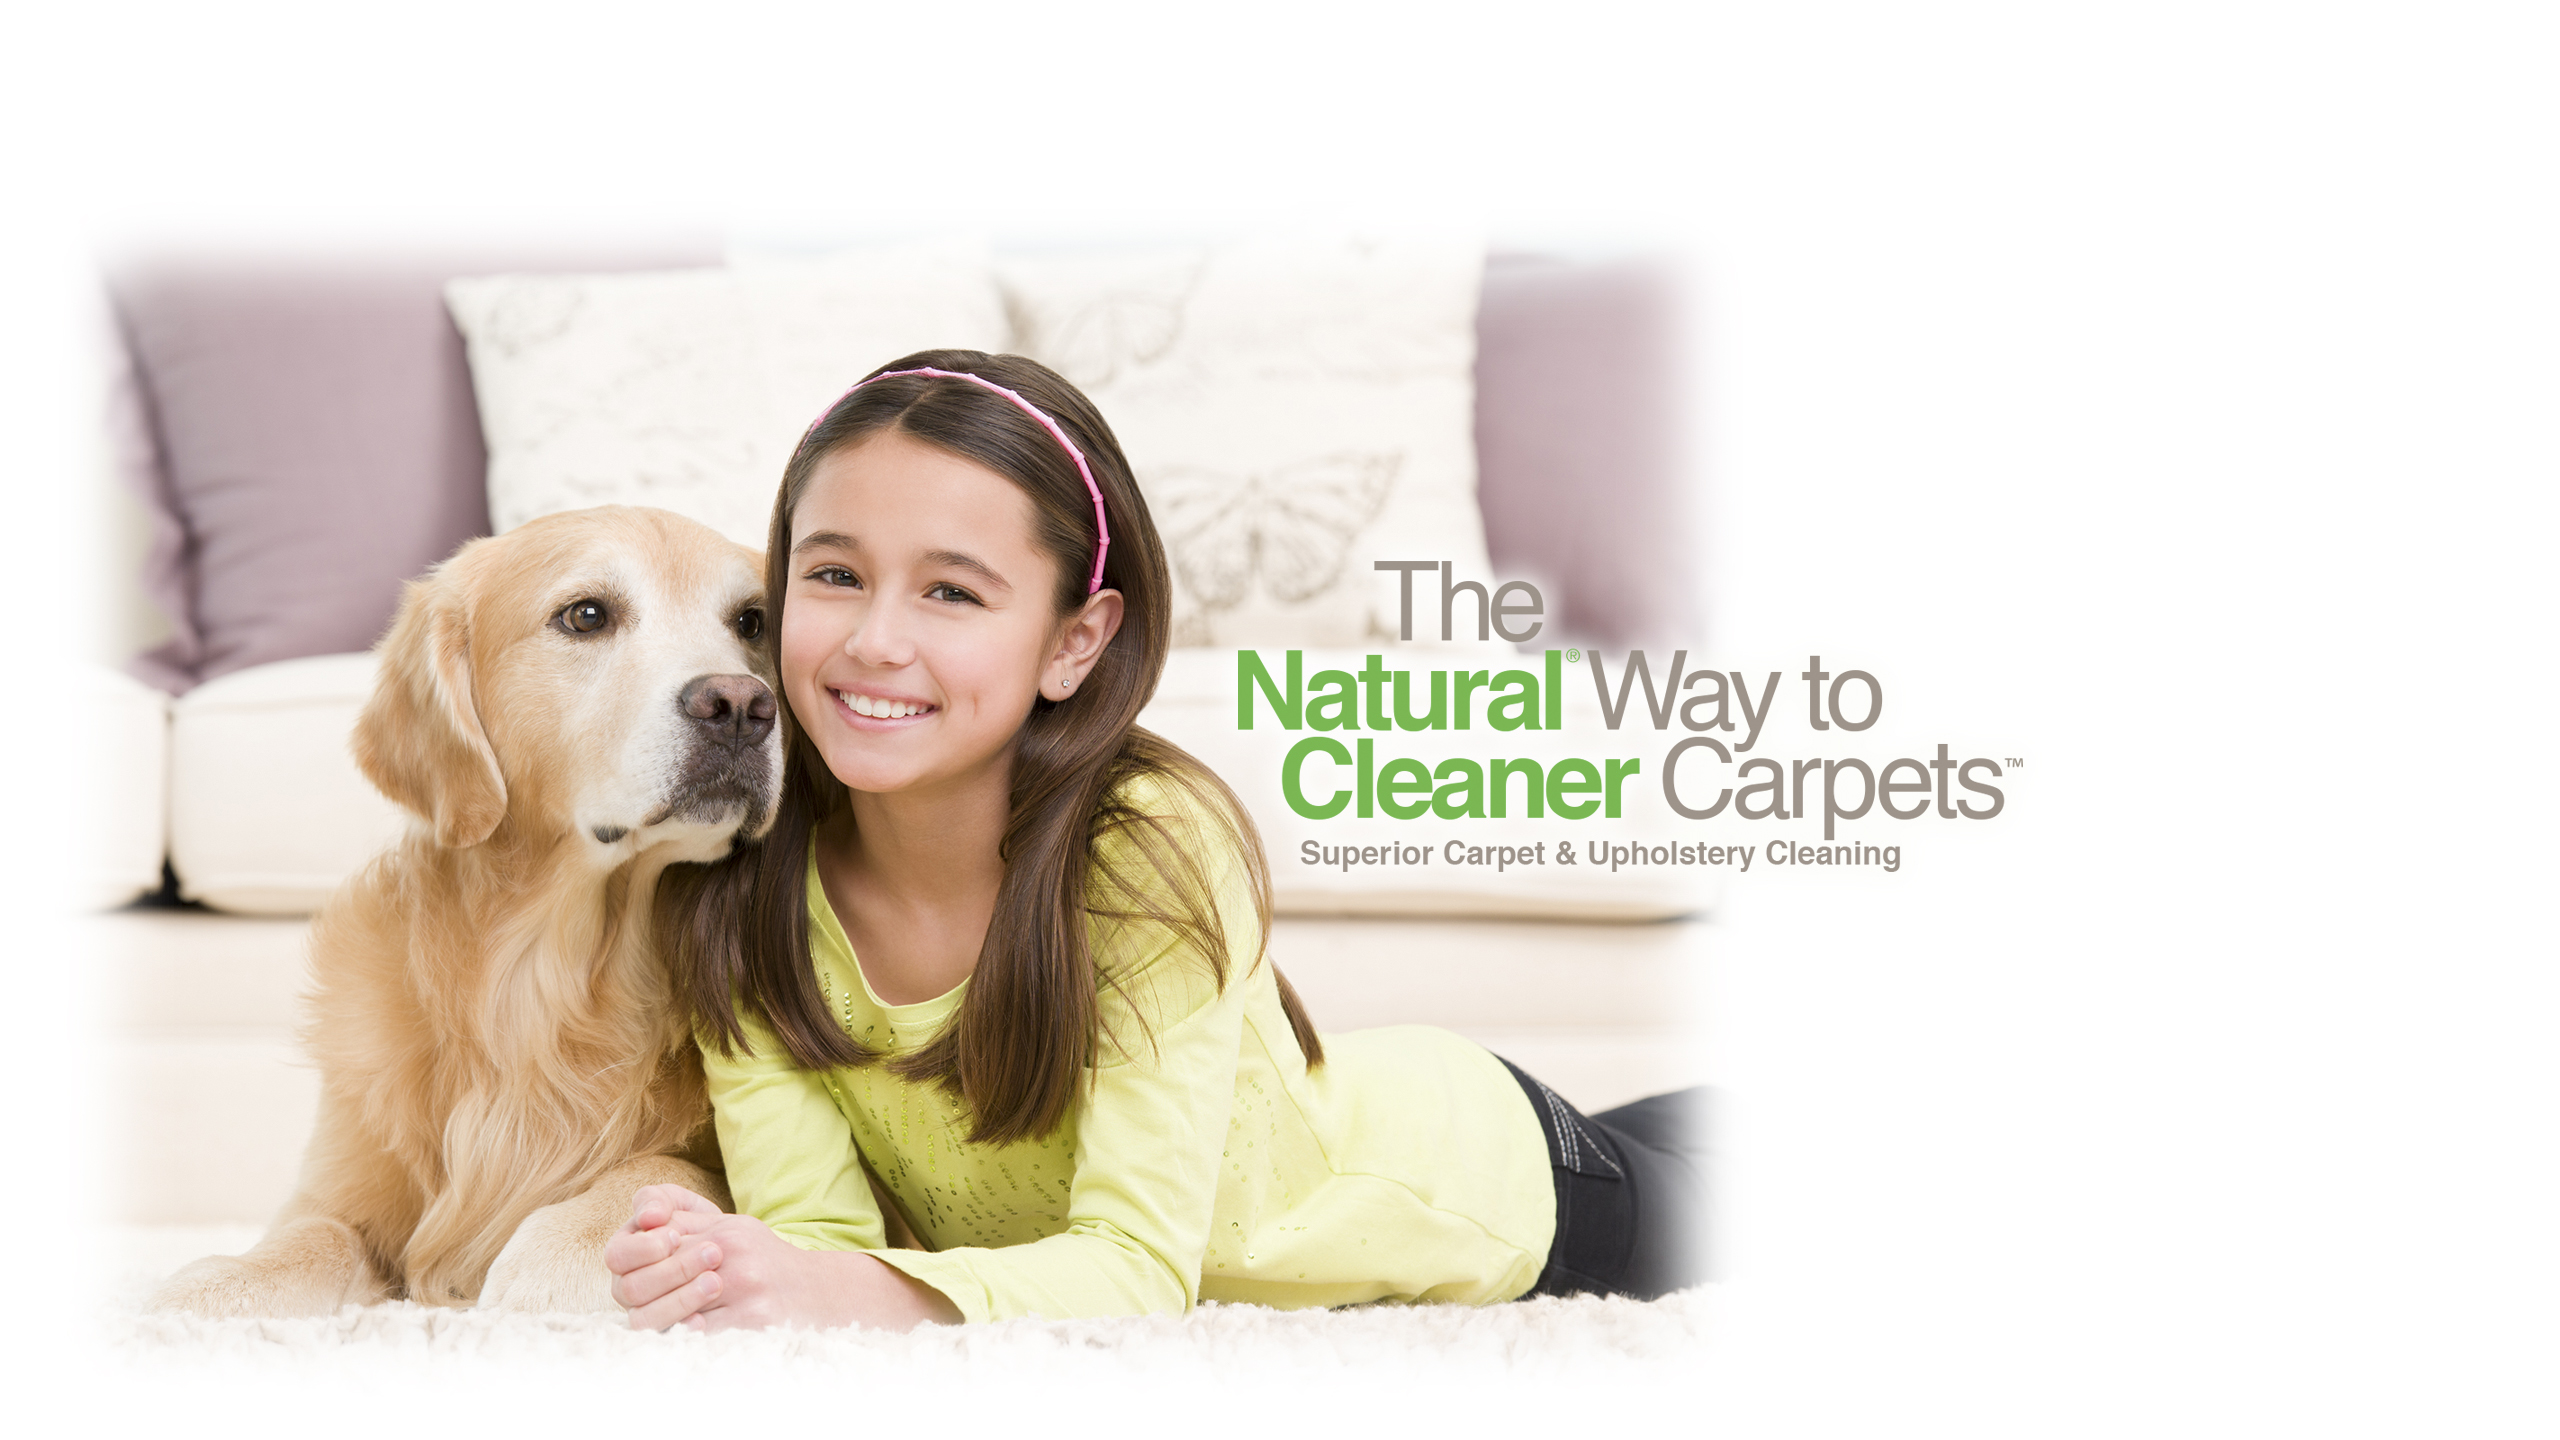 Carbonating Cleaning Bubbles   Green, Environmentally Friendly, Carpet Cleaning